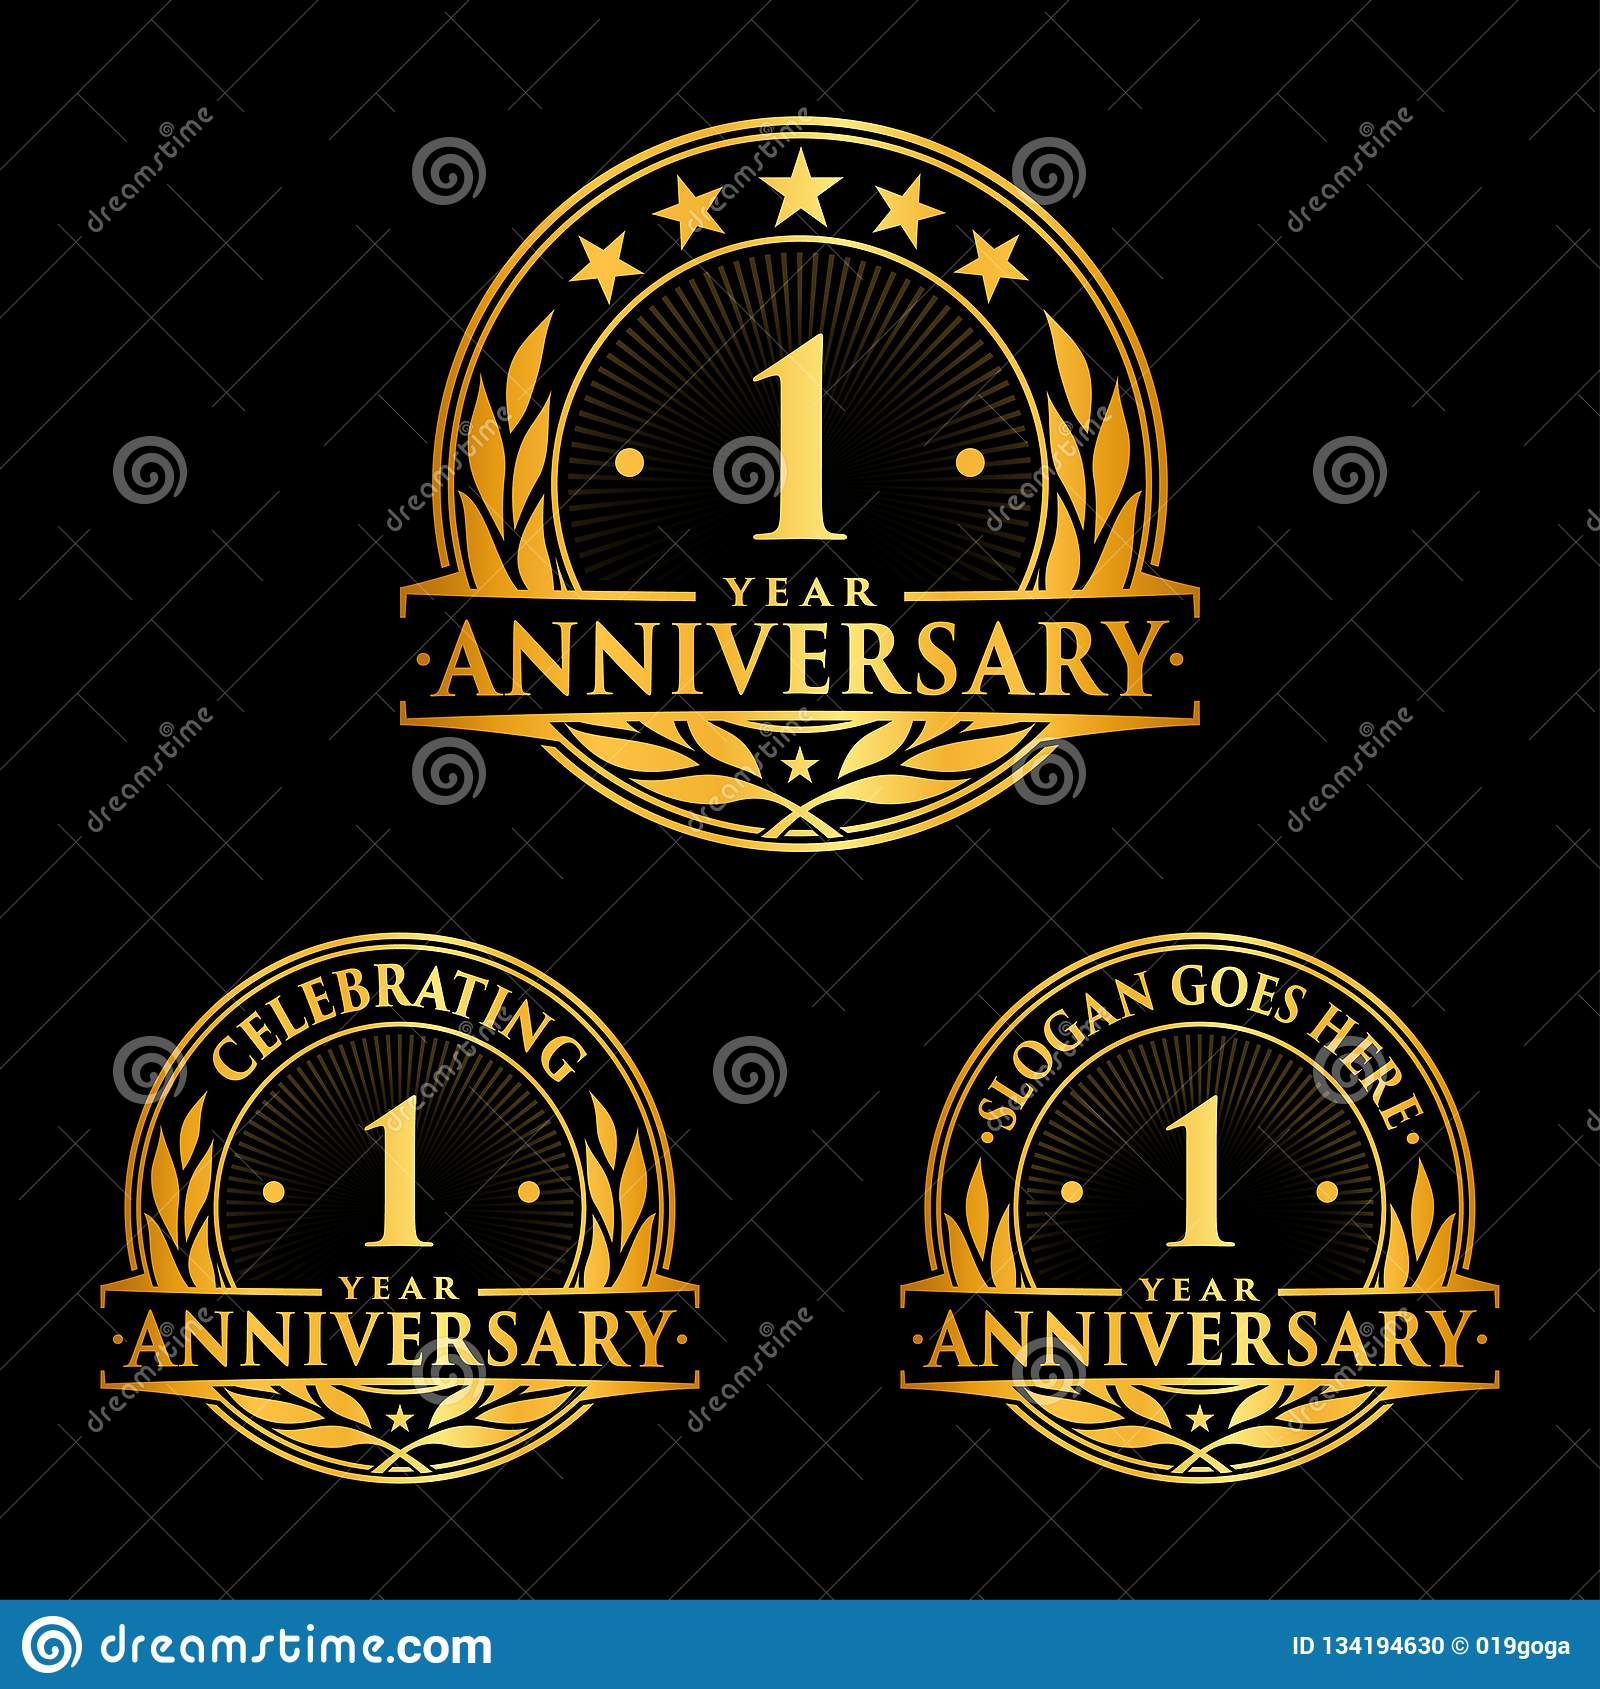 1 year anniversary design template anniversary vector and illustration 1st logo stock vector illustration of jubilee design 134194630 https www dreamstime com year anniversary design template anniversary vector illustration st logo years anniversary design template one years image134194630